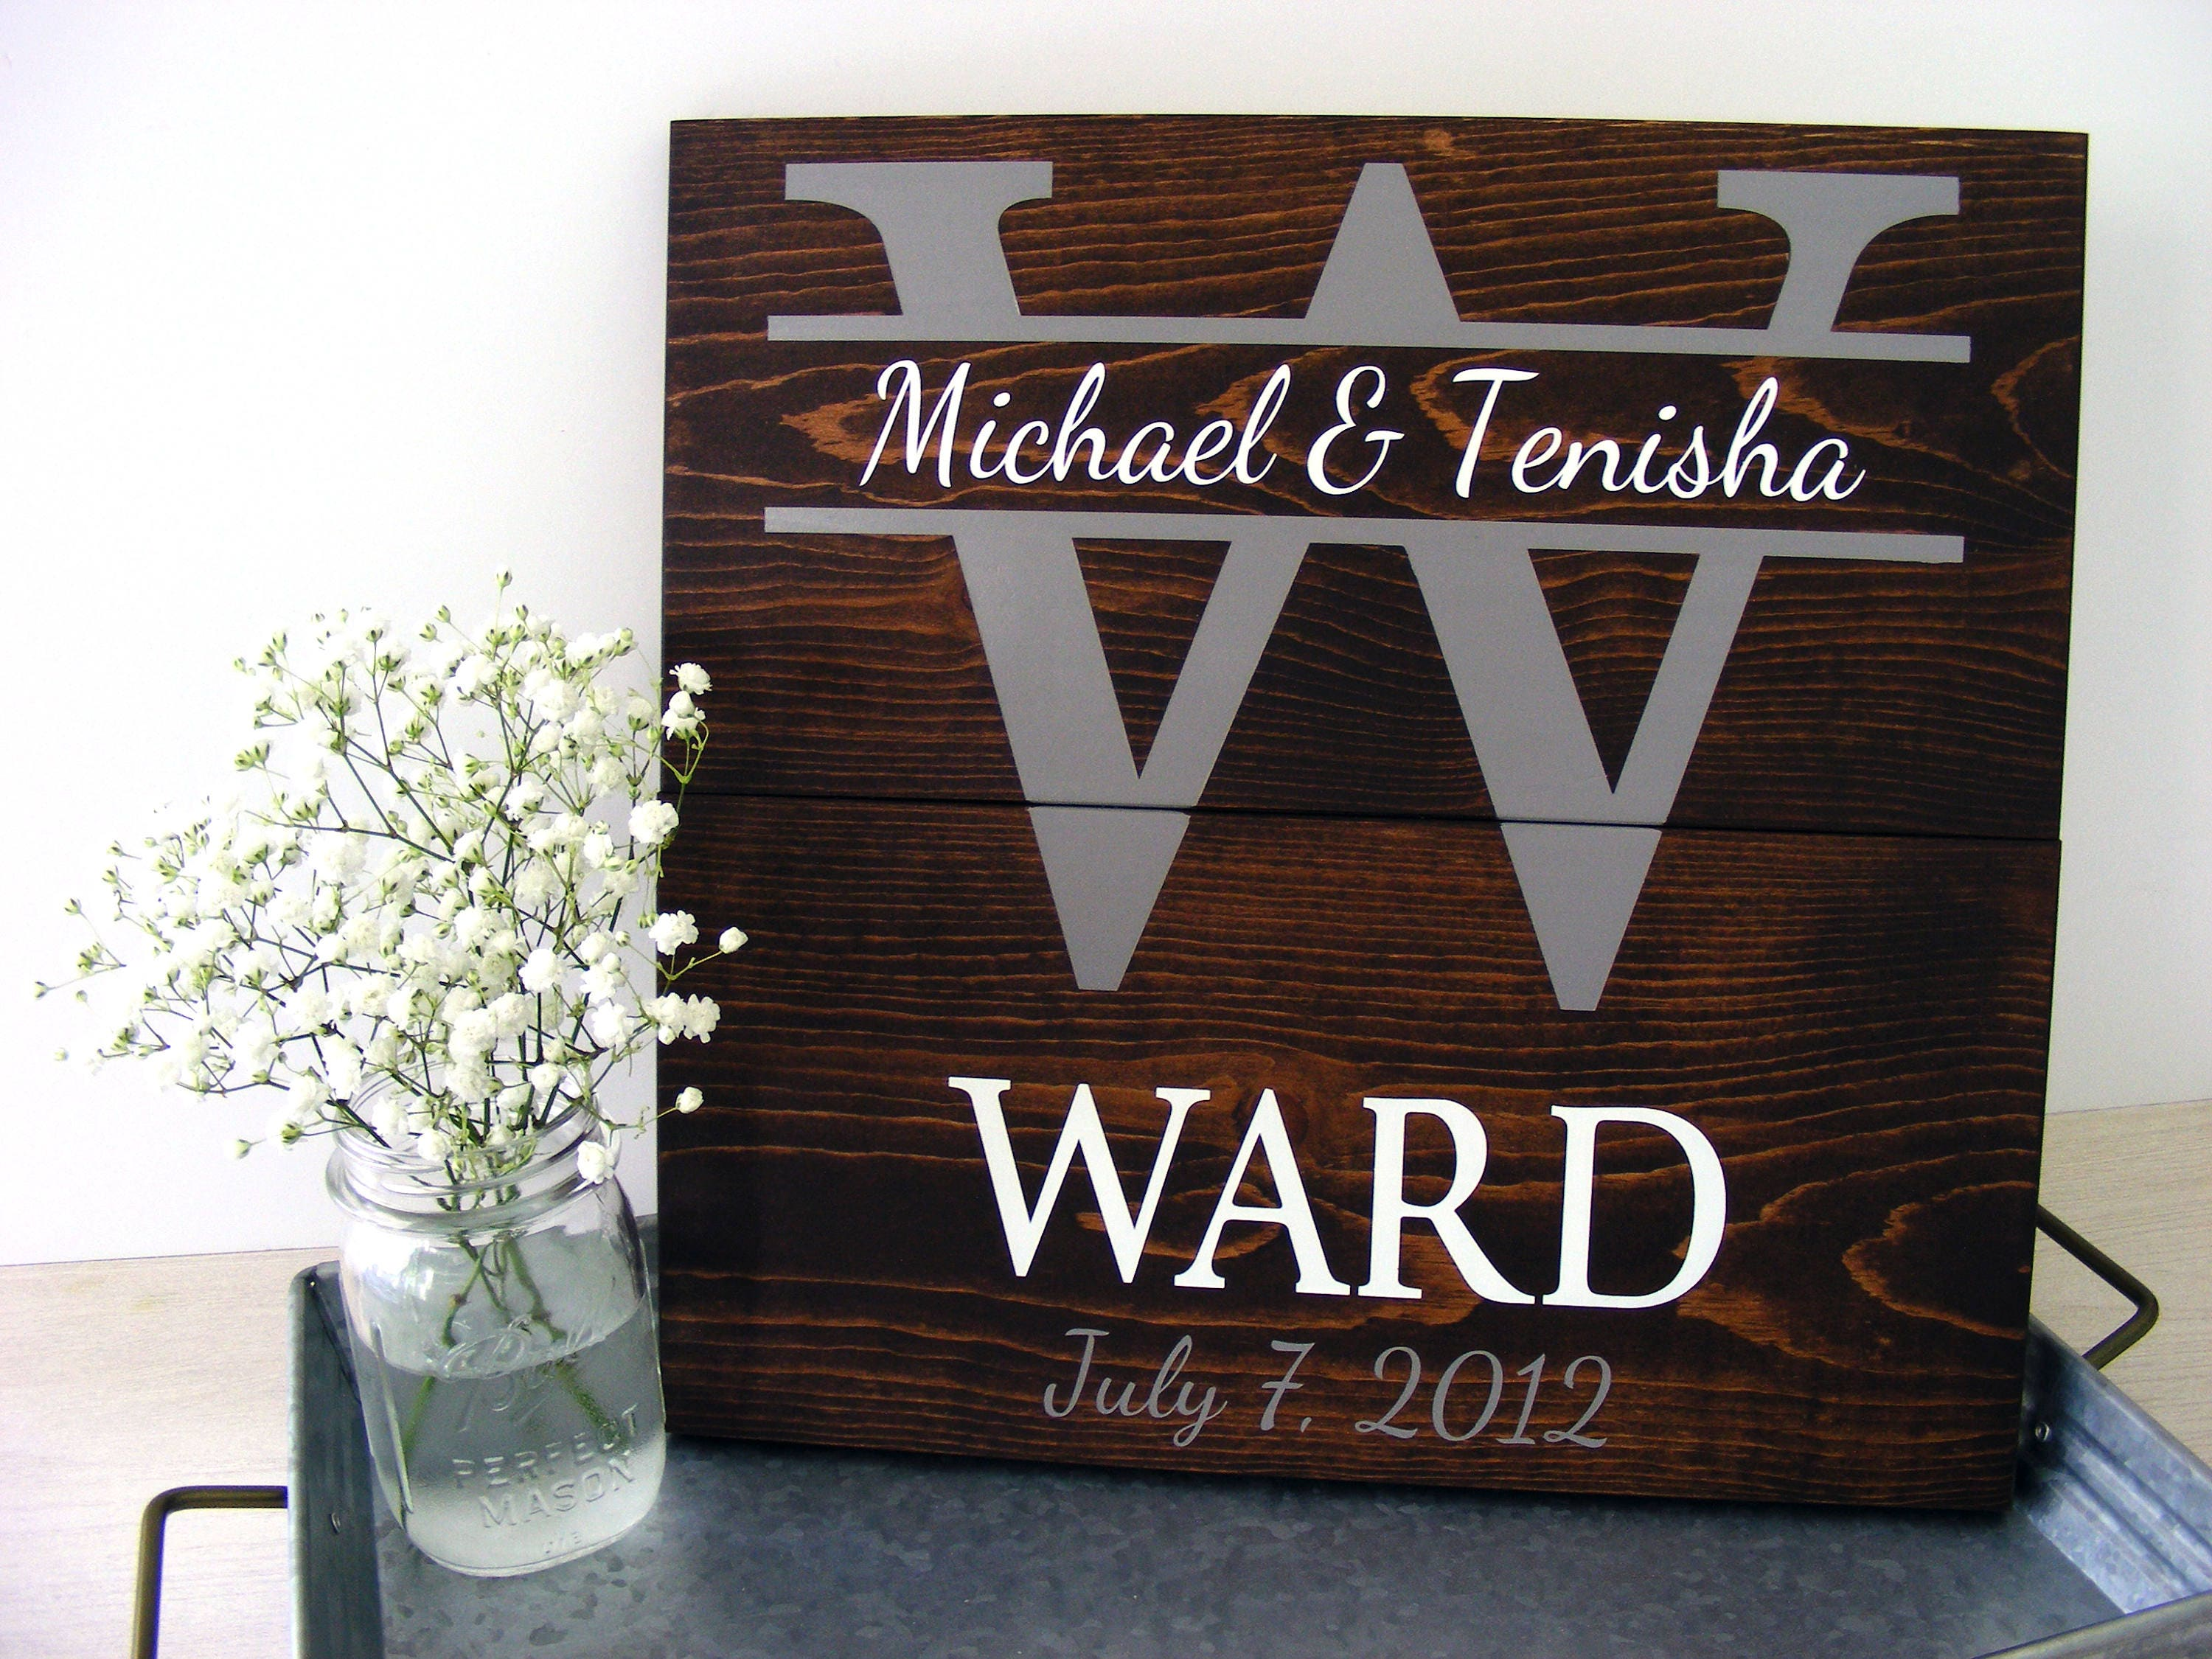 Wedding Gift Ideas Personalized: Personalized Wedding Gift Wedding Gift Ideas Newlywed Gift